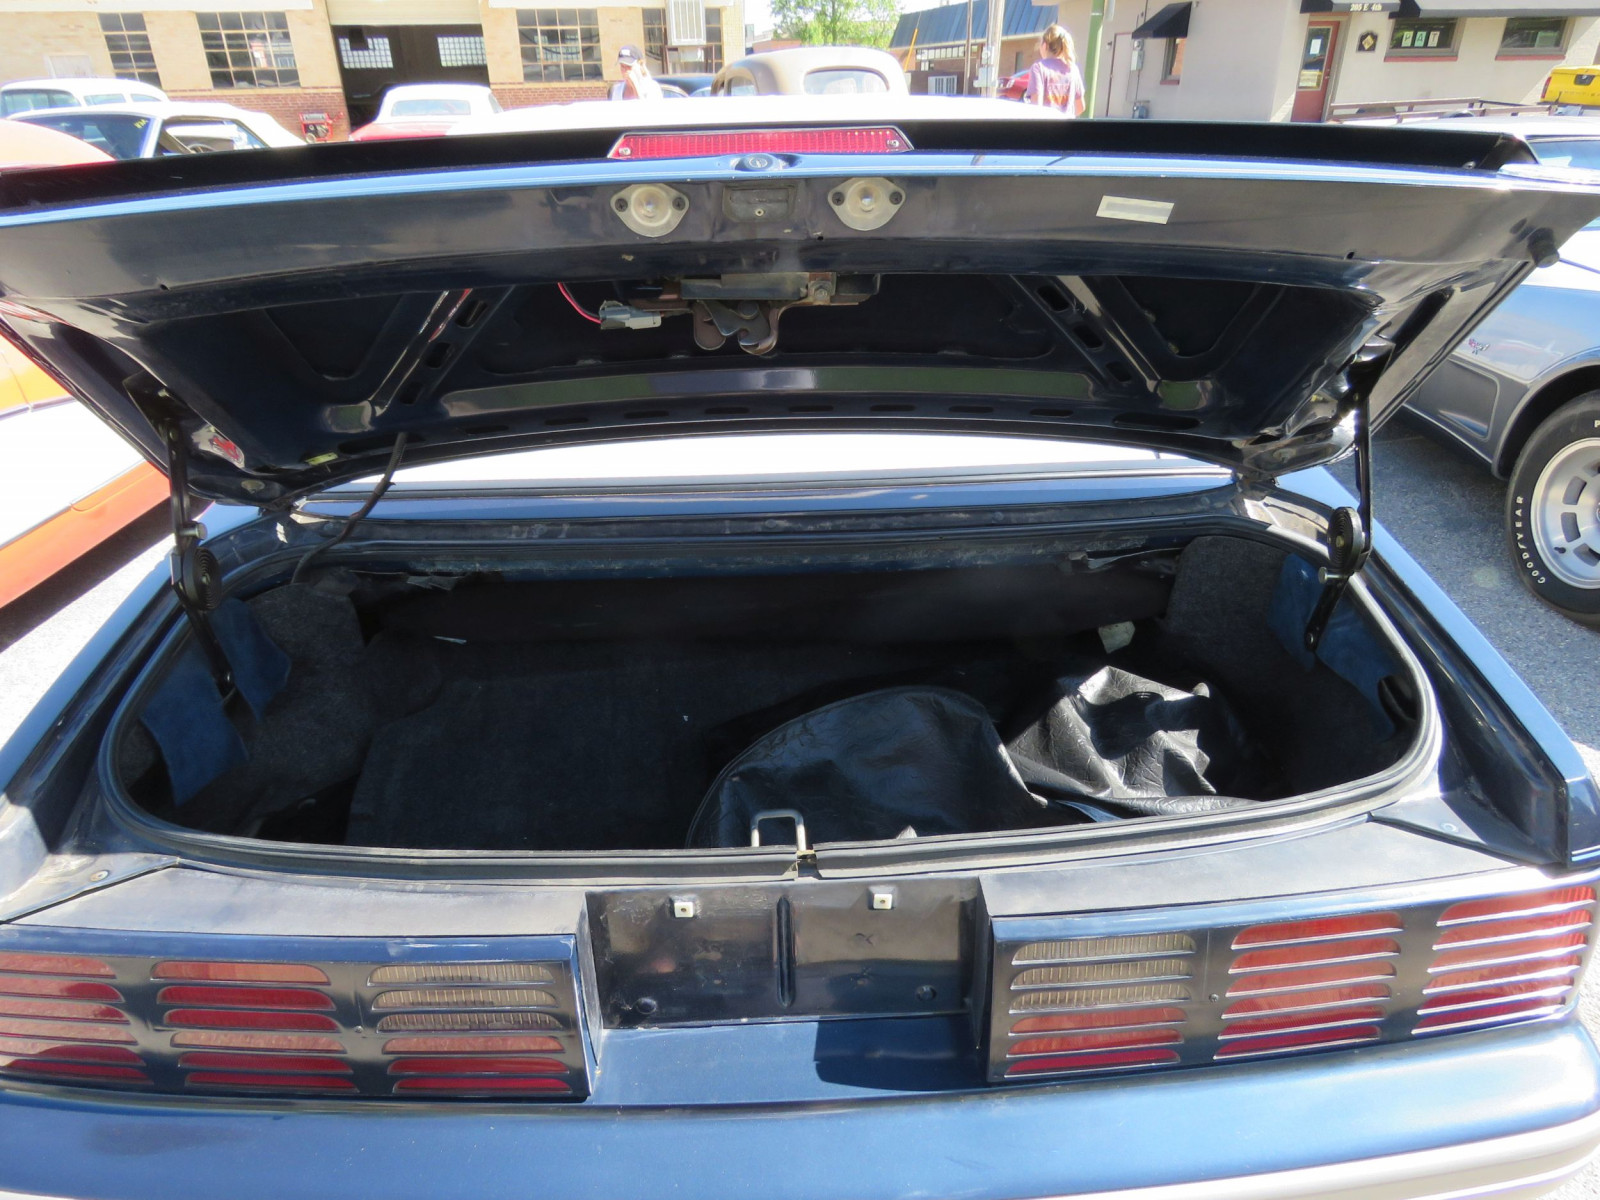 1988 FORD MUSTANG GT 5.0 CONVERTIBLE - Image 14